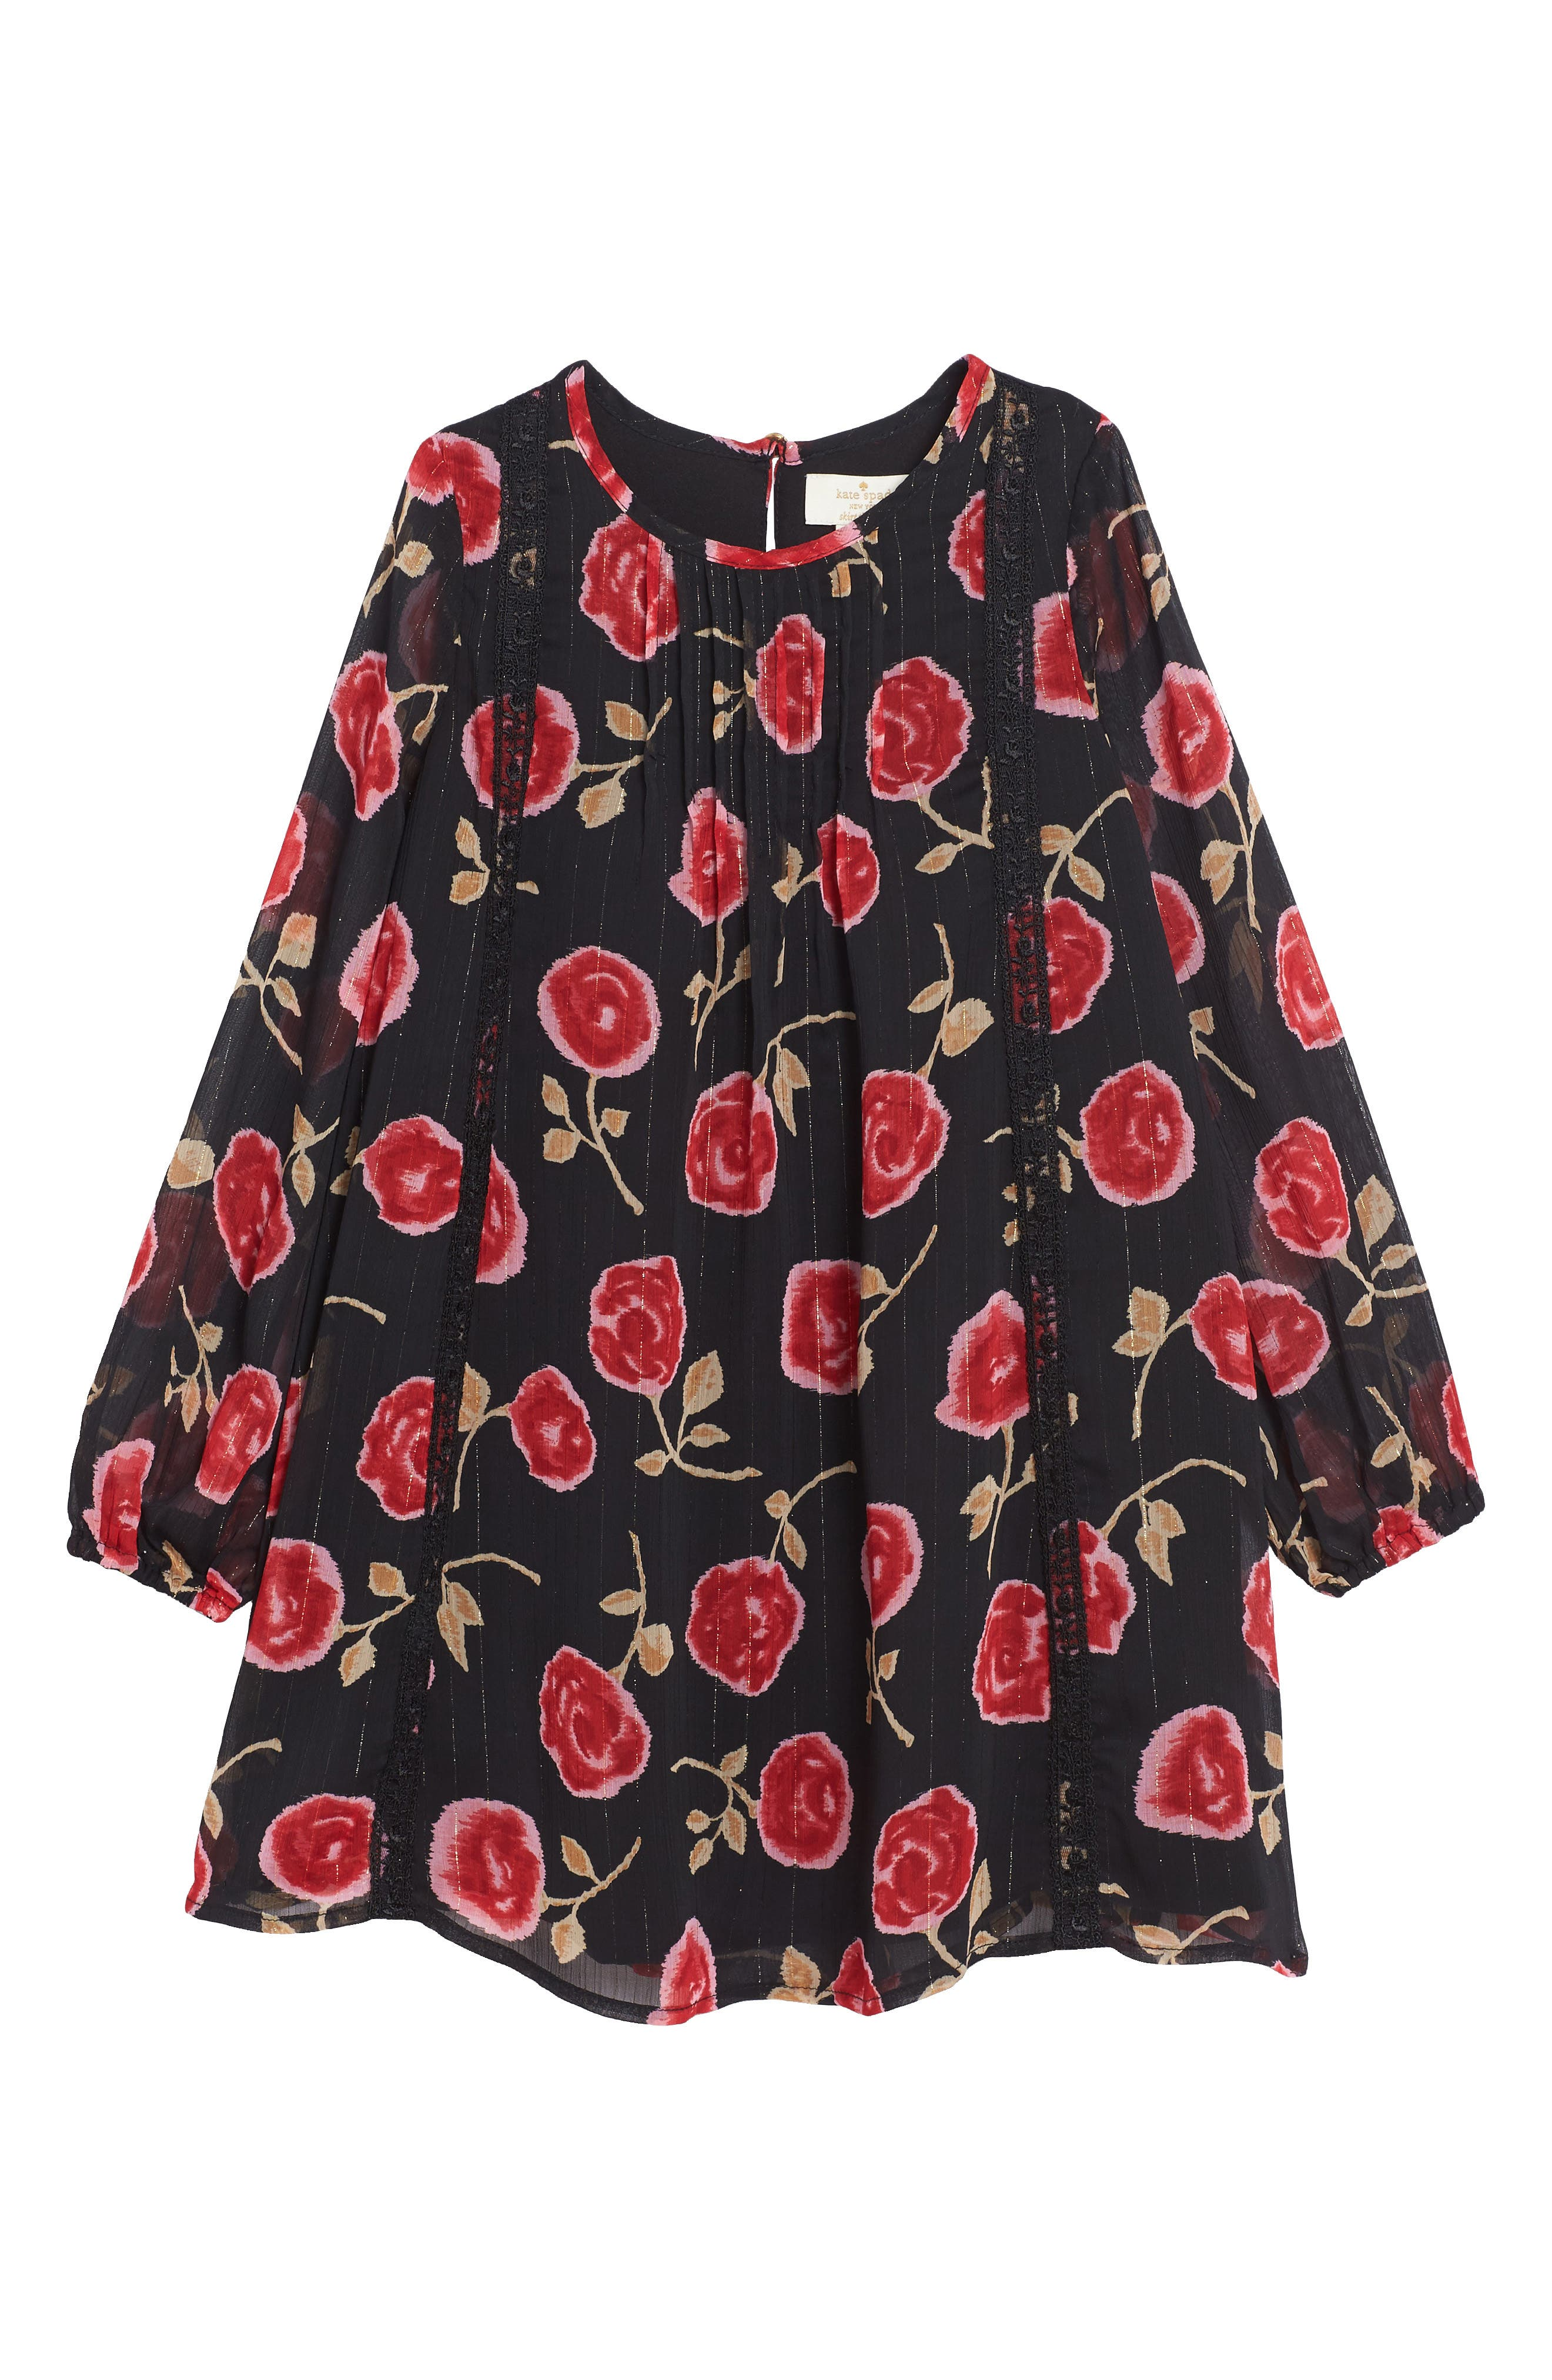 Alternate Image 1 Selected - kate spade new york rose print chiffon dress (Big Girls)